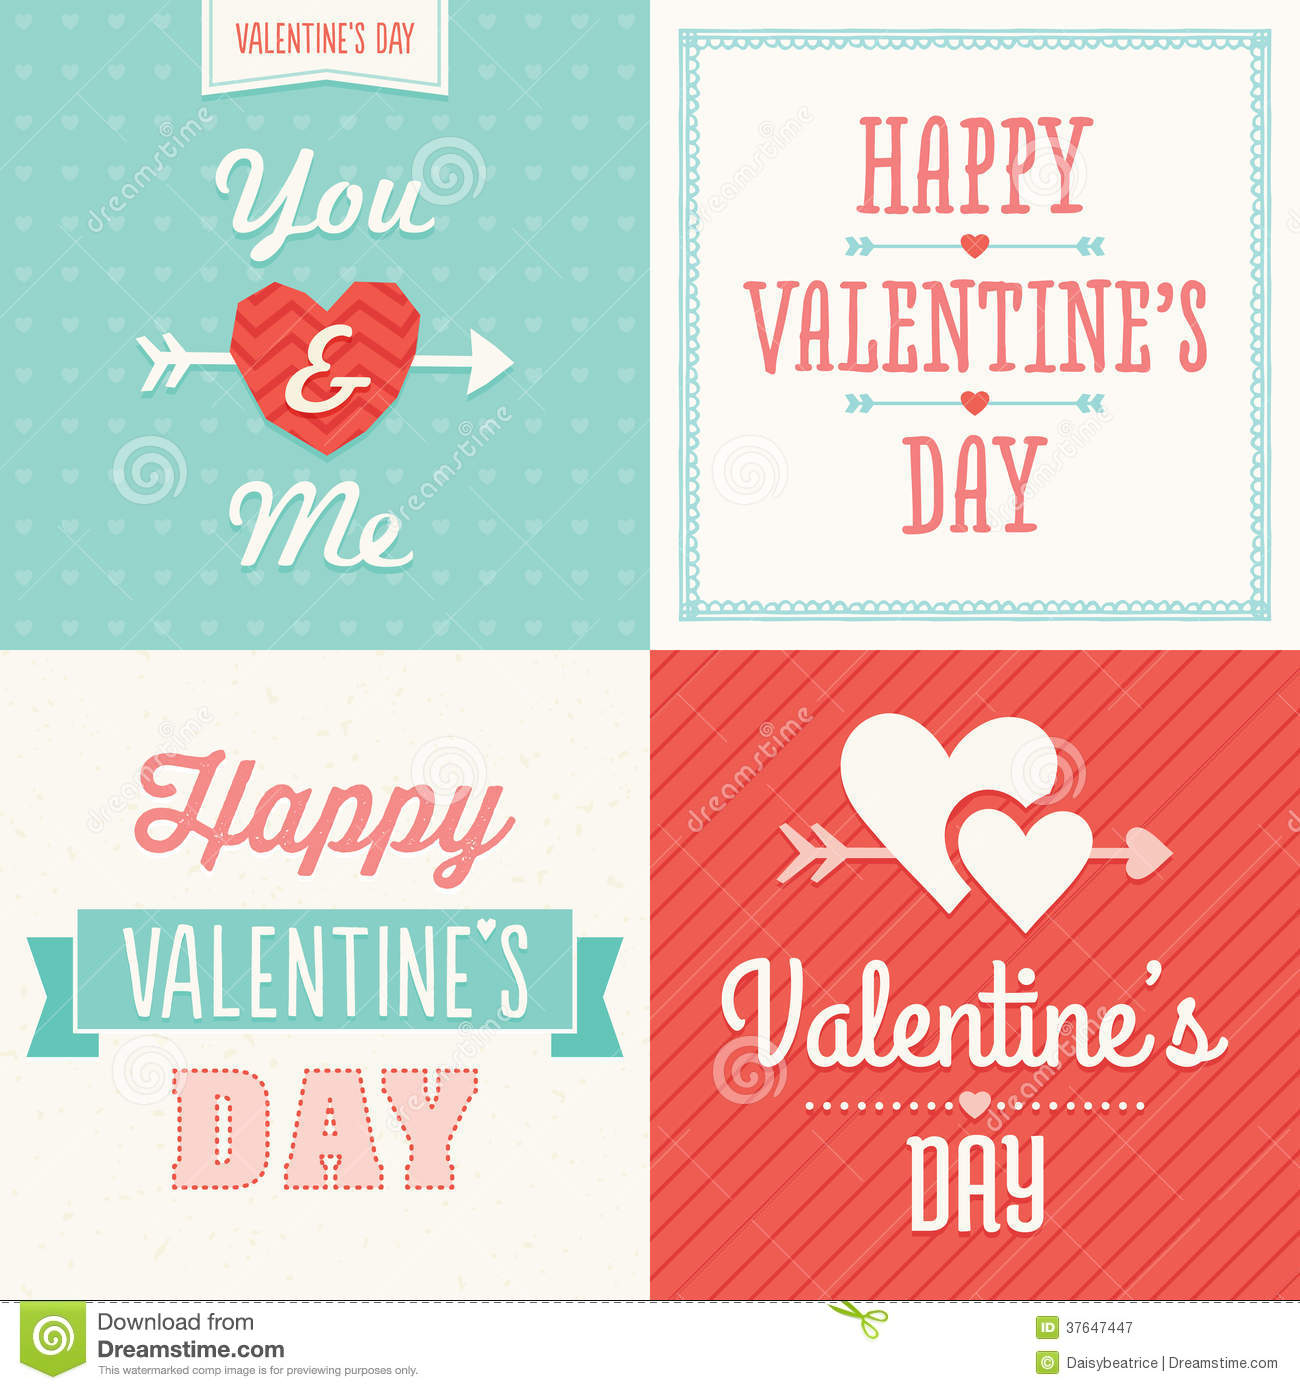 Royalty Free Stock Photography: Hipster typographic Valentine cards in ...